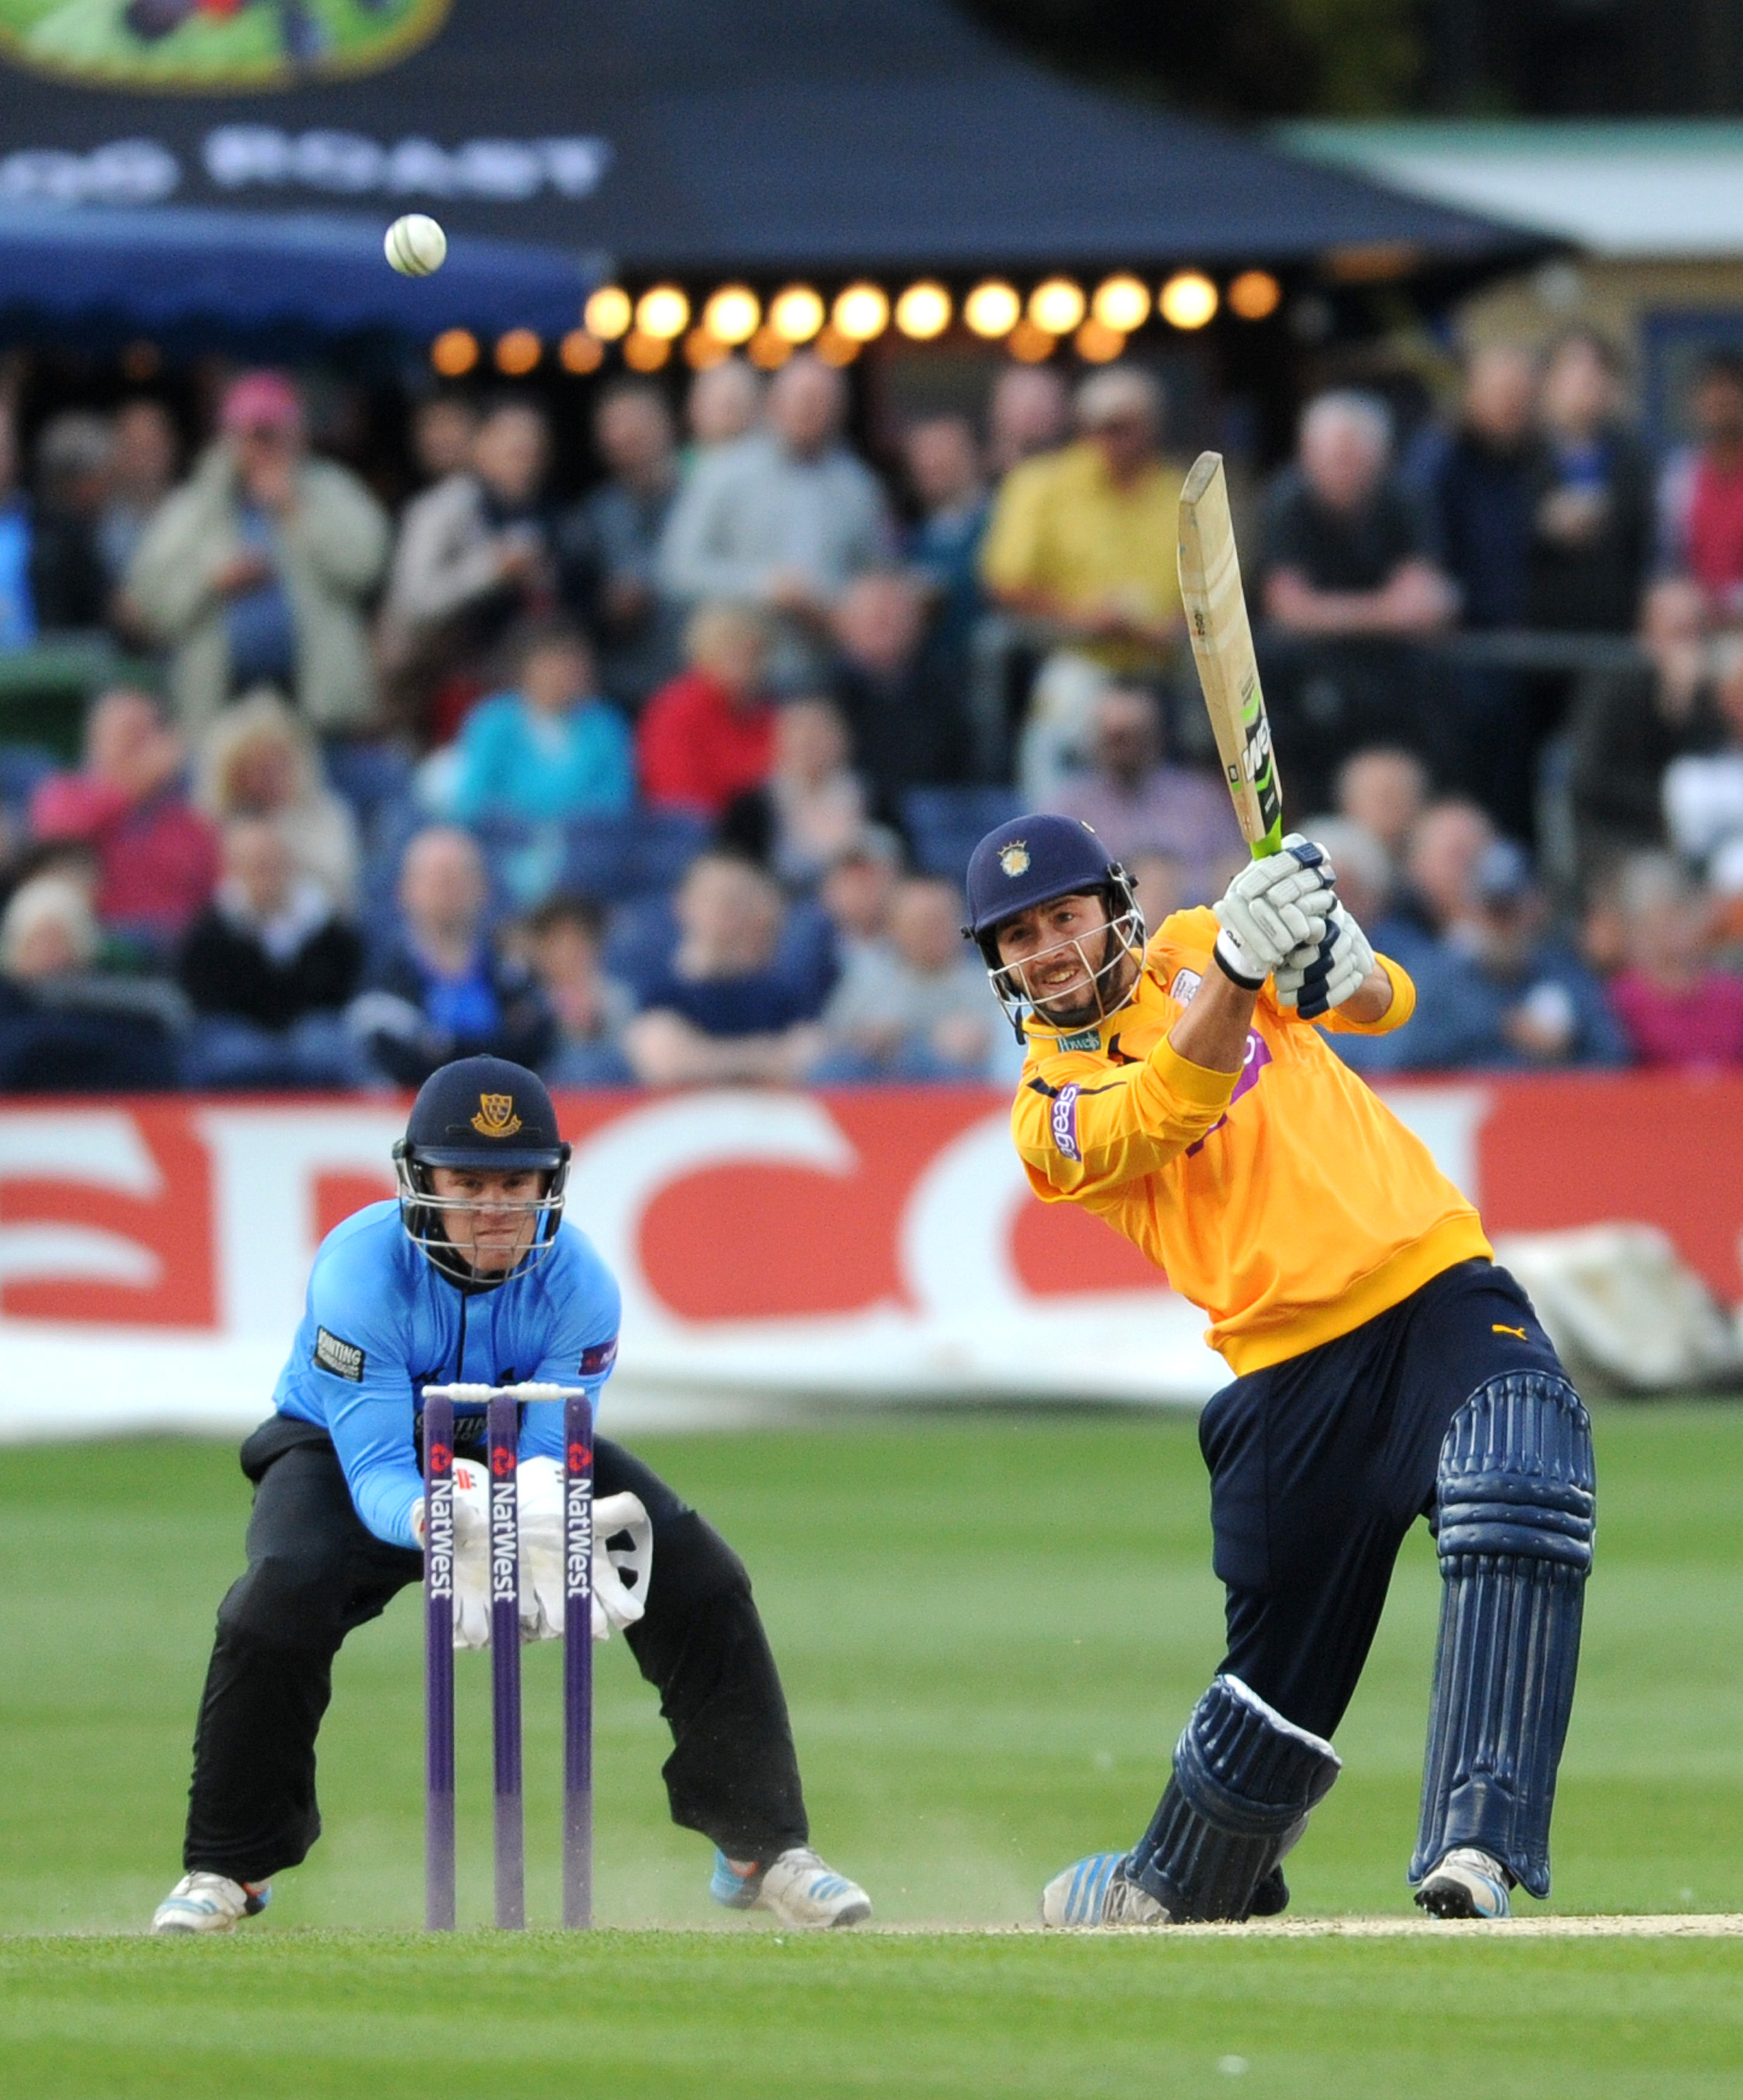 Vince stars as Hants win at Hove